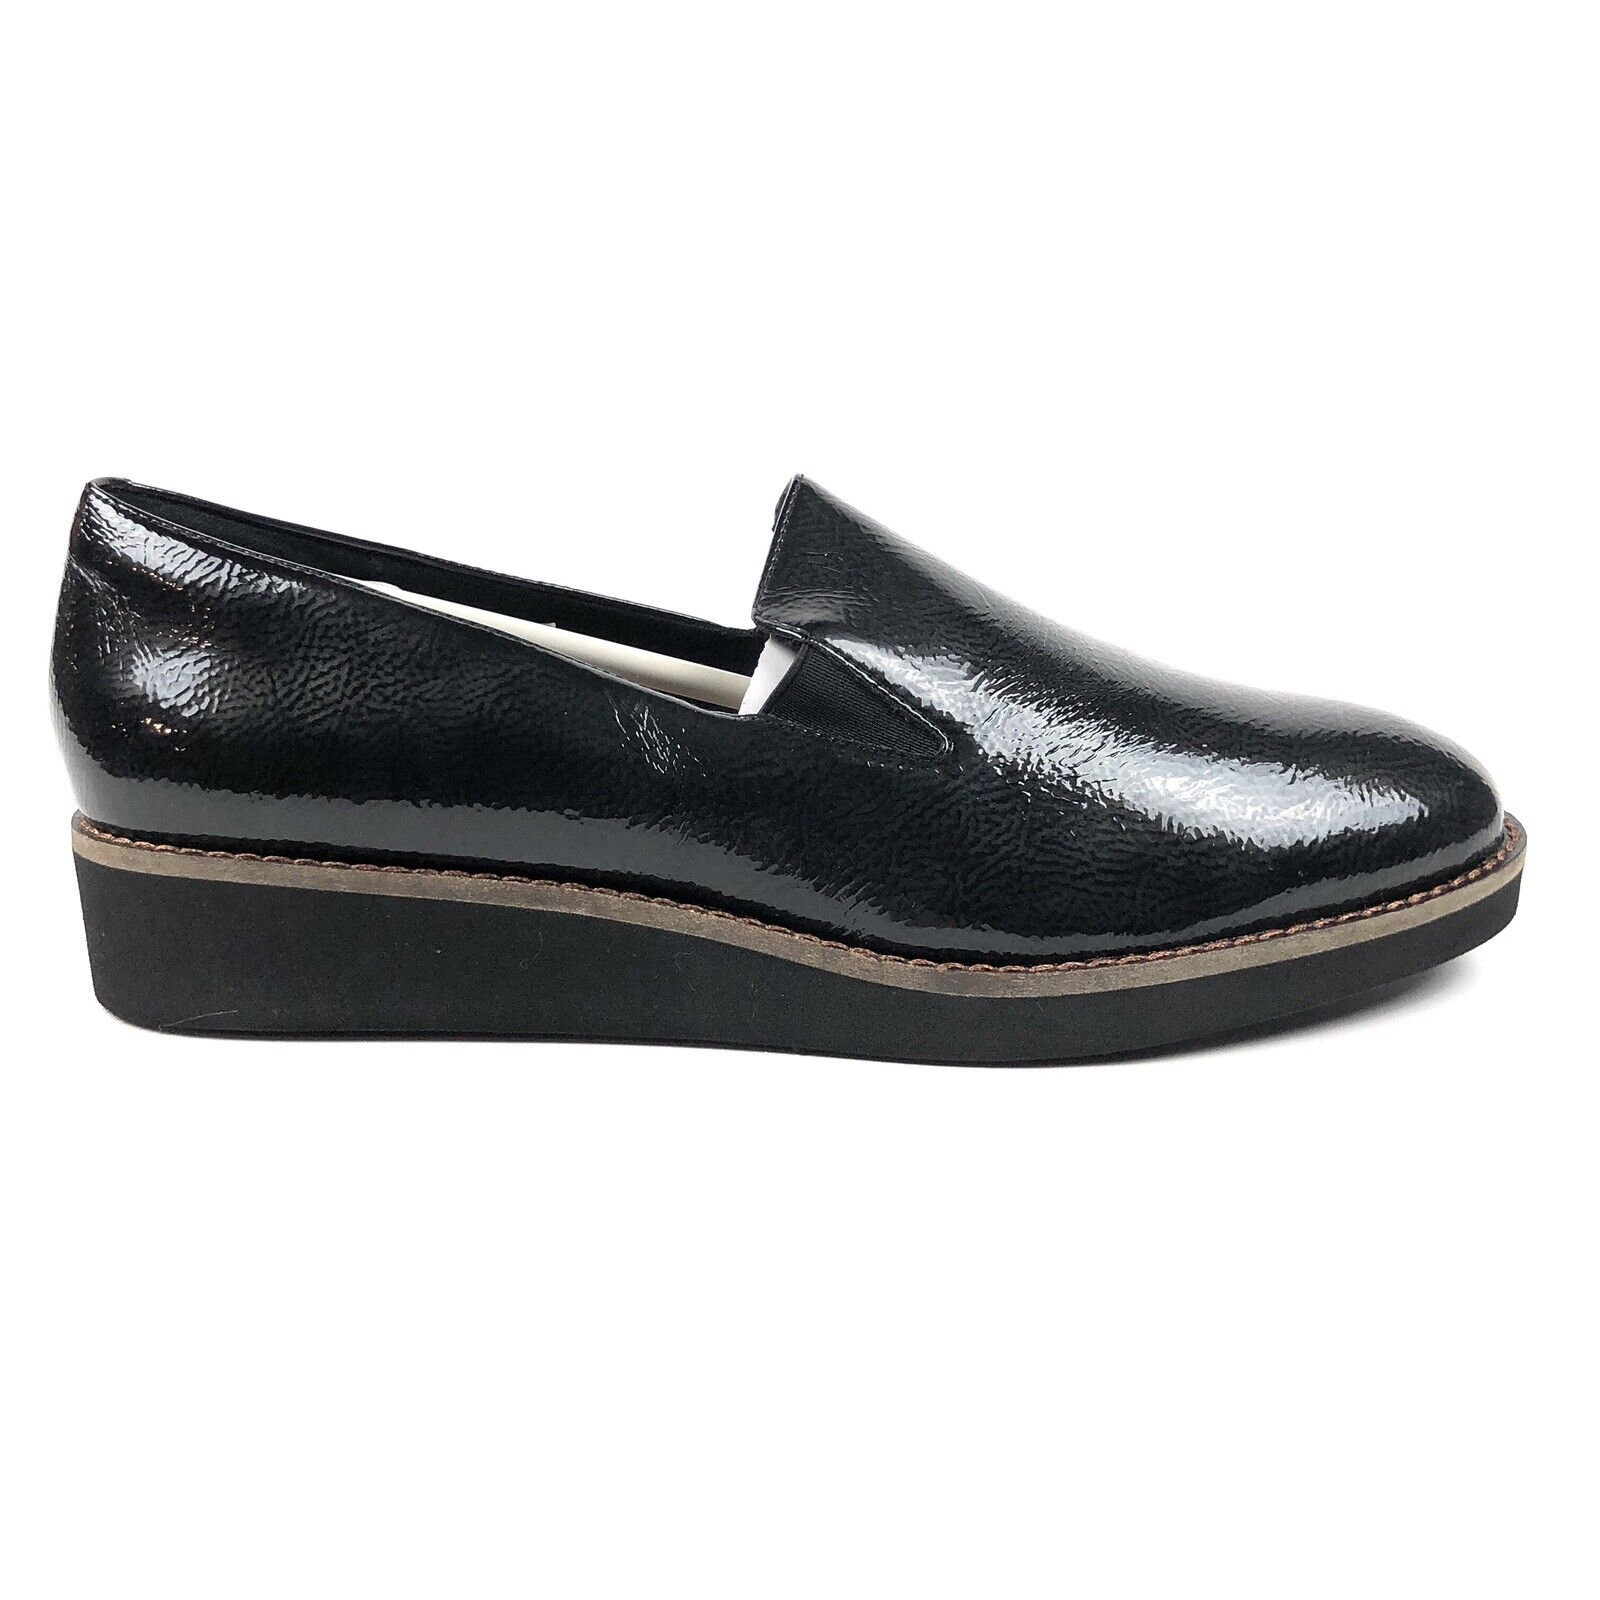 Softwalk Whistle Black Patent Leather Womens 9 Wide Low Loafers Shoes S1810-005